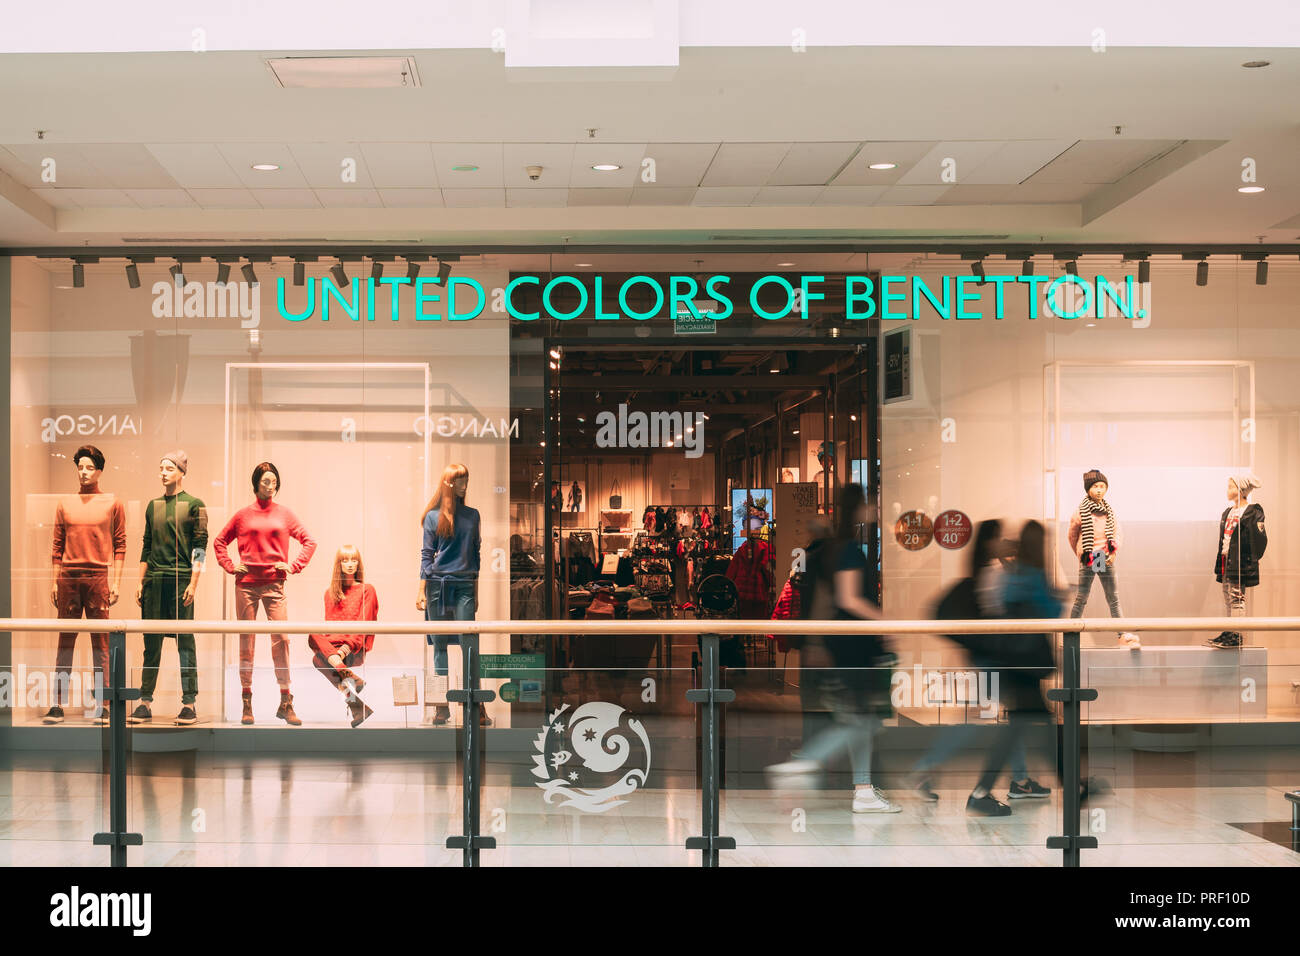 Warsaw, Poland - September 27, 2018: People Walking Near United Colors of Benetton Store In Shopping Mall - Stock Image